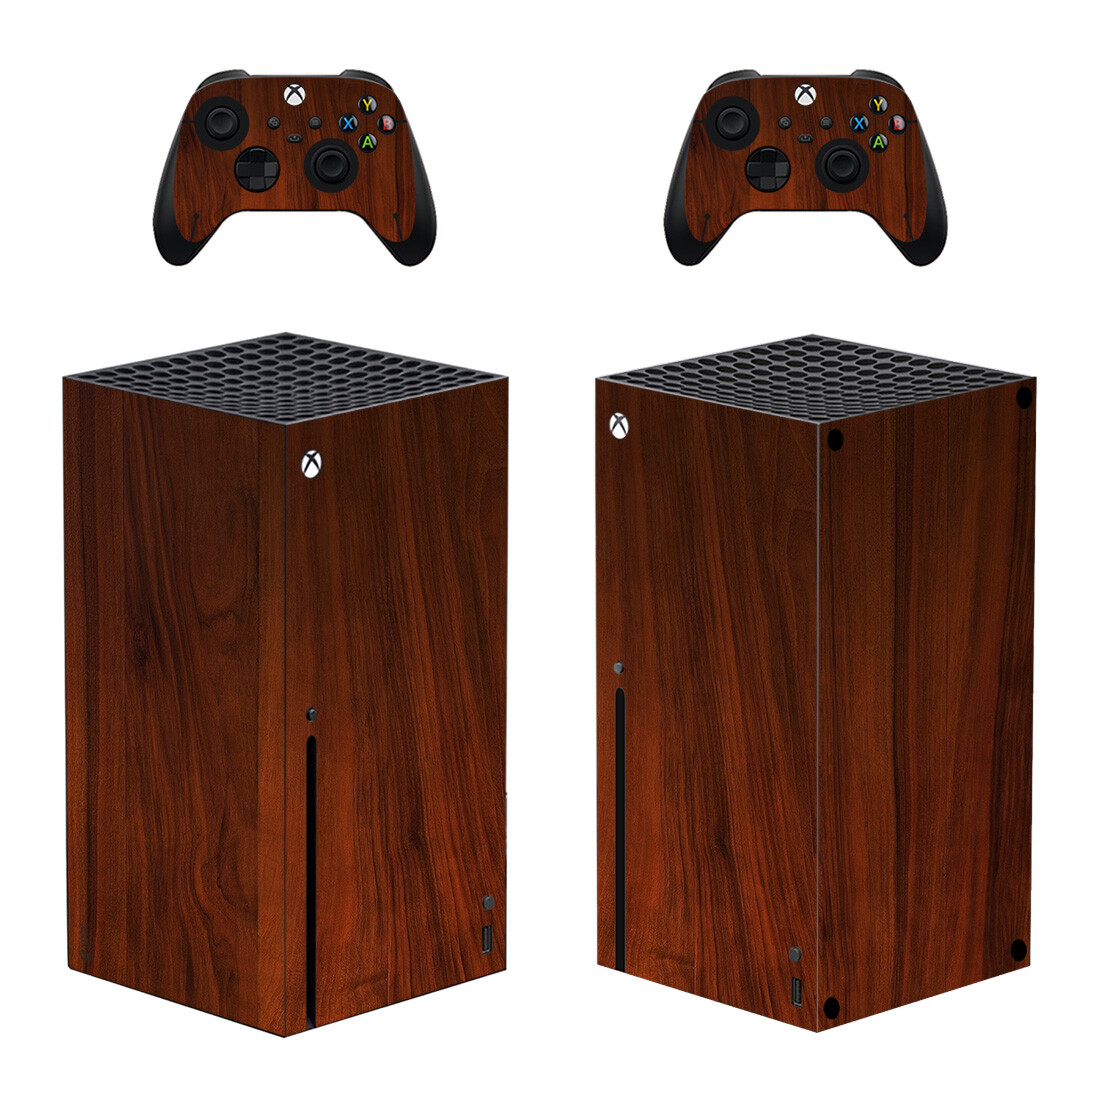 Brown Solid Wood Skin Sticker For Xbox Series X And Controllers